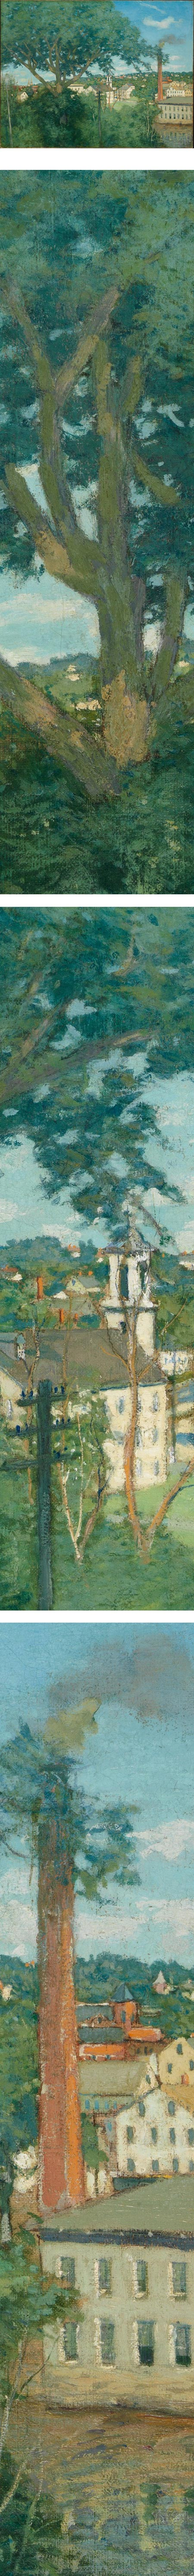 The Factory Village,  Julian Alden Weir, American Impressionist painting